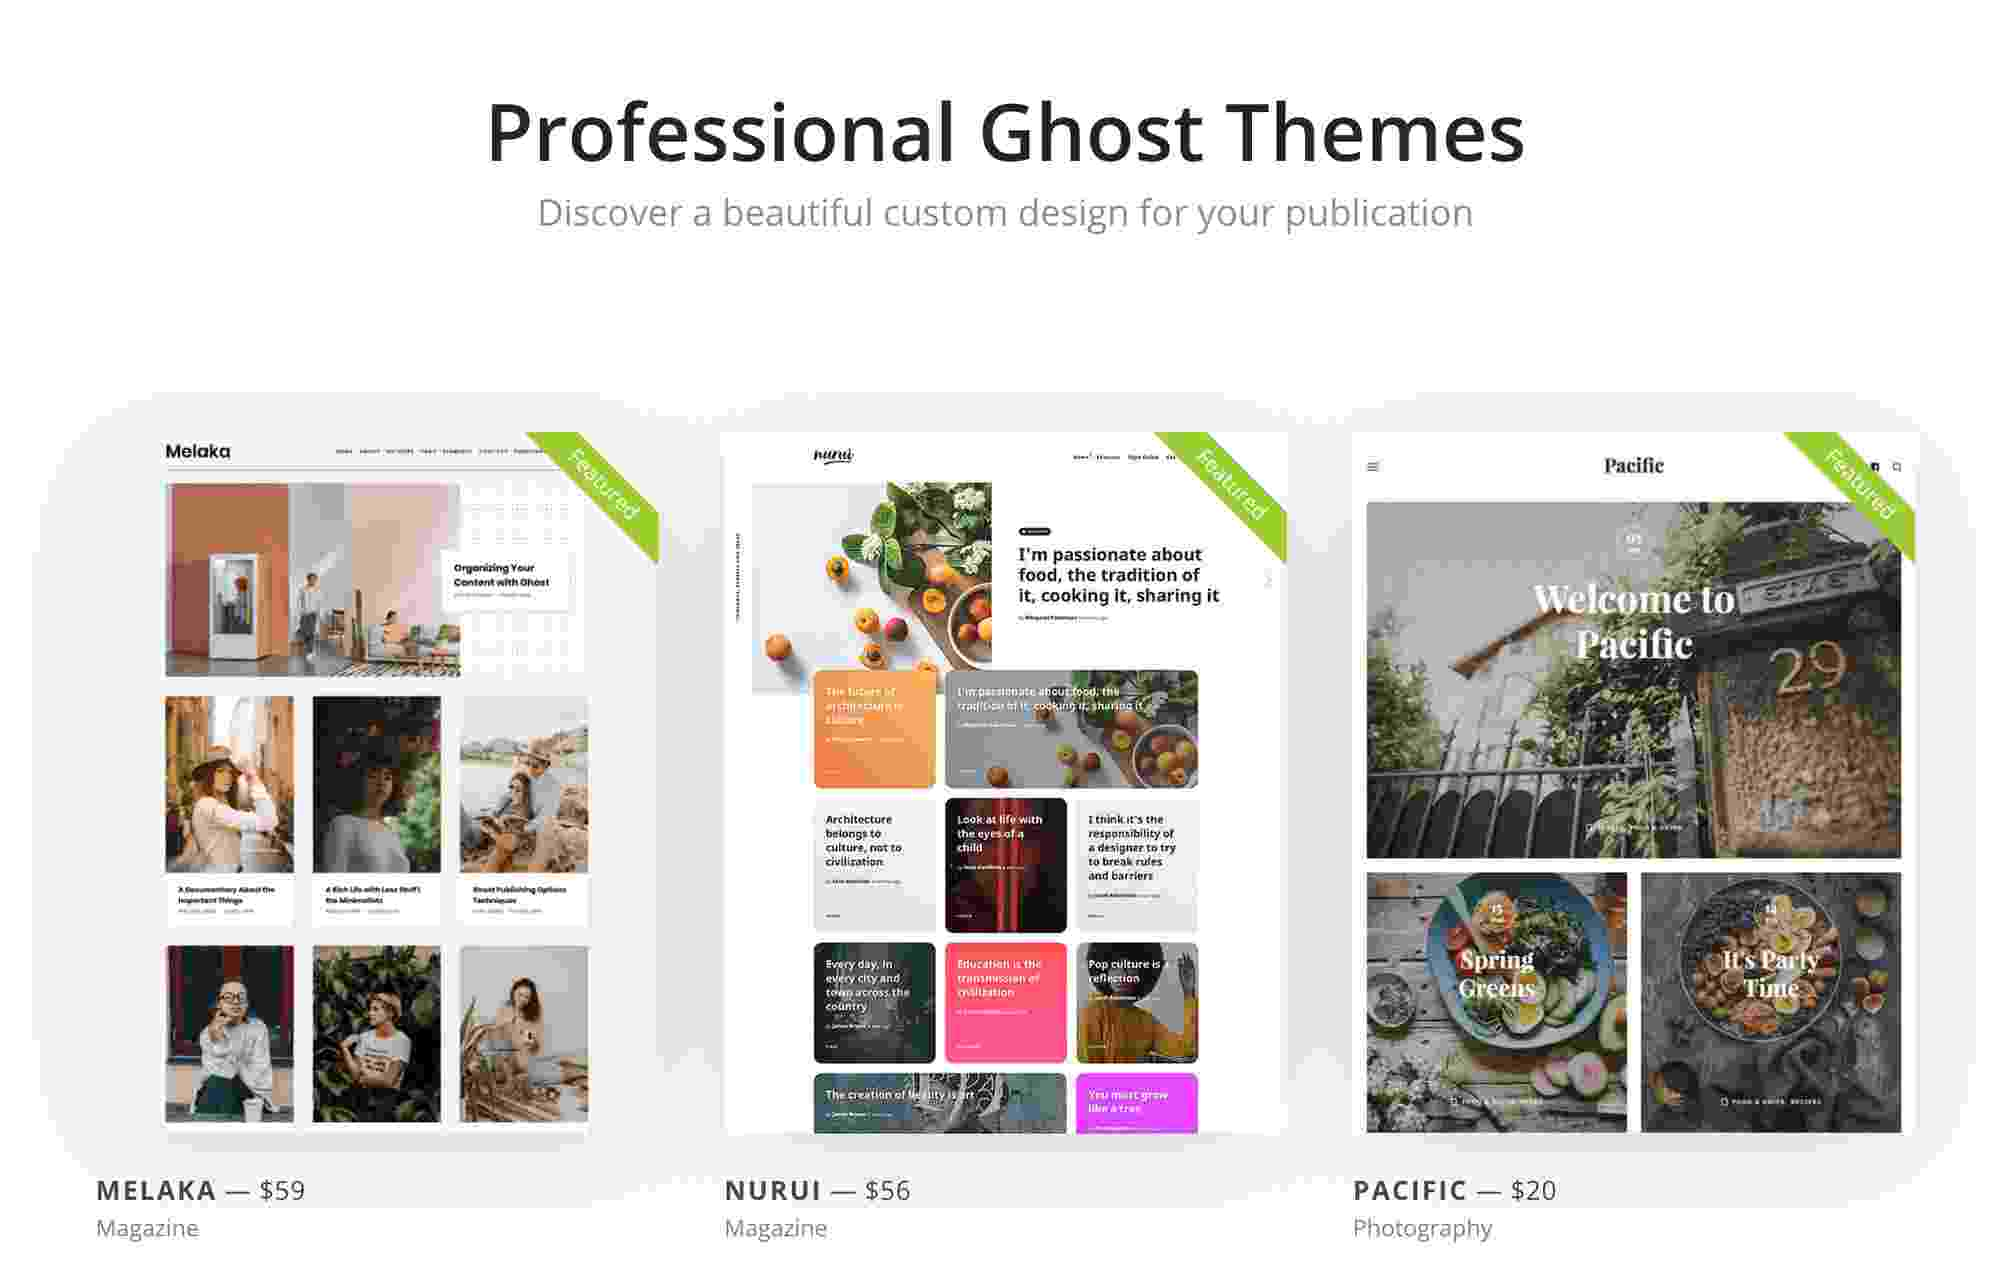 Ghost theme marketplace screenshot